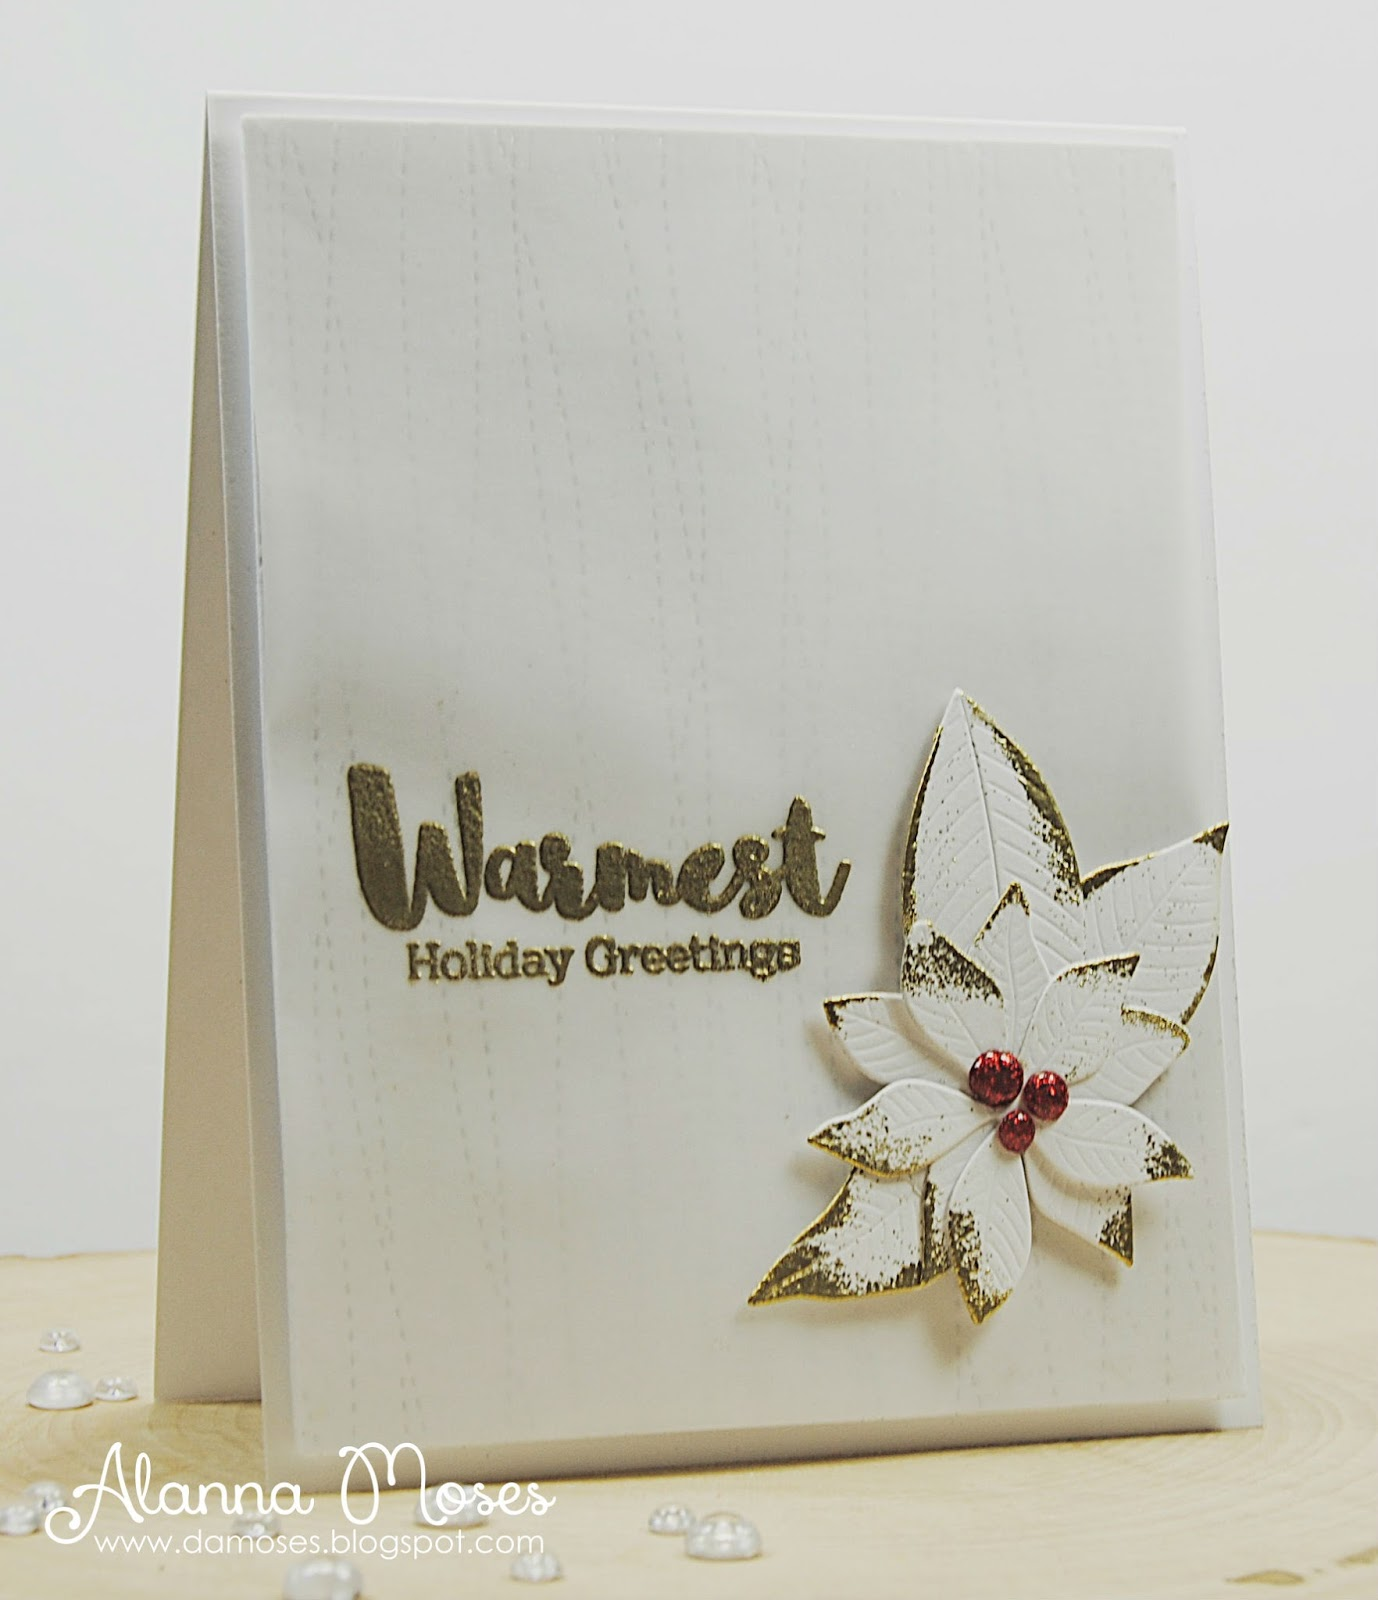 Whimsy Stamps Build a Poinsettia에 대한 이미지 검색결과